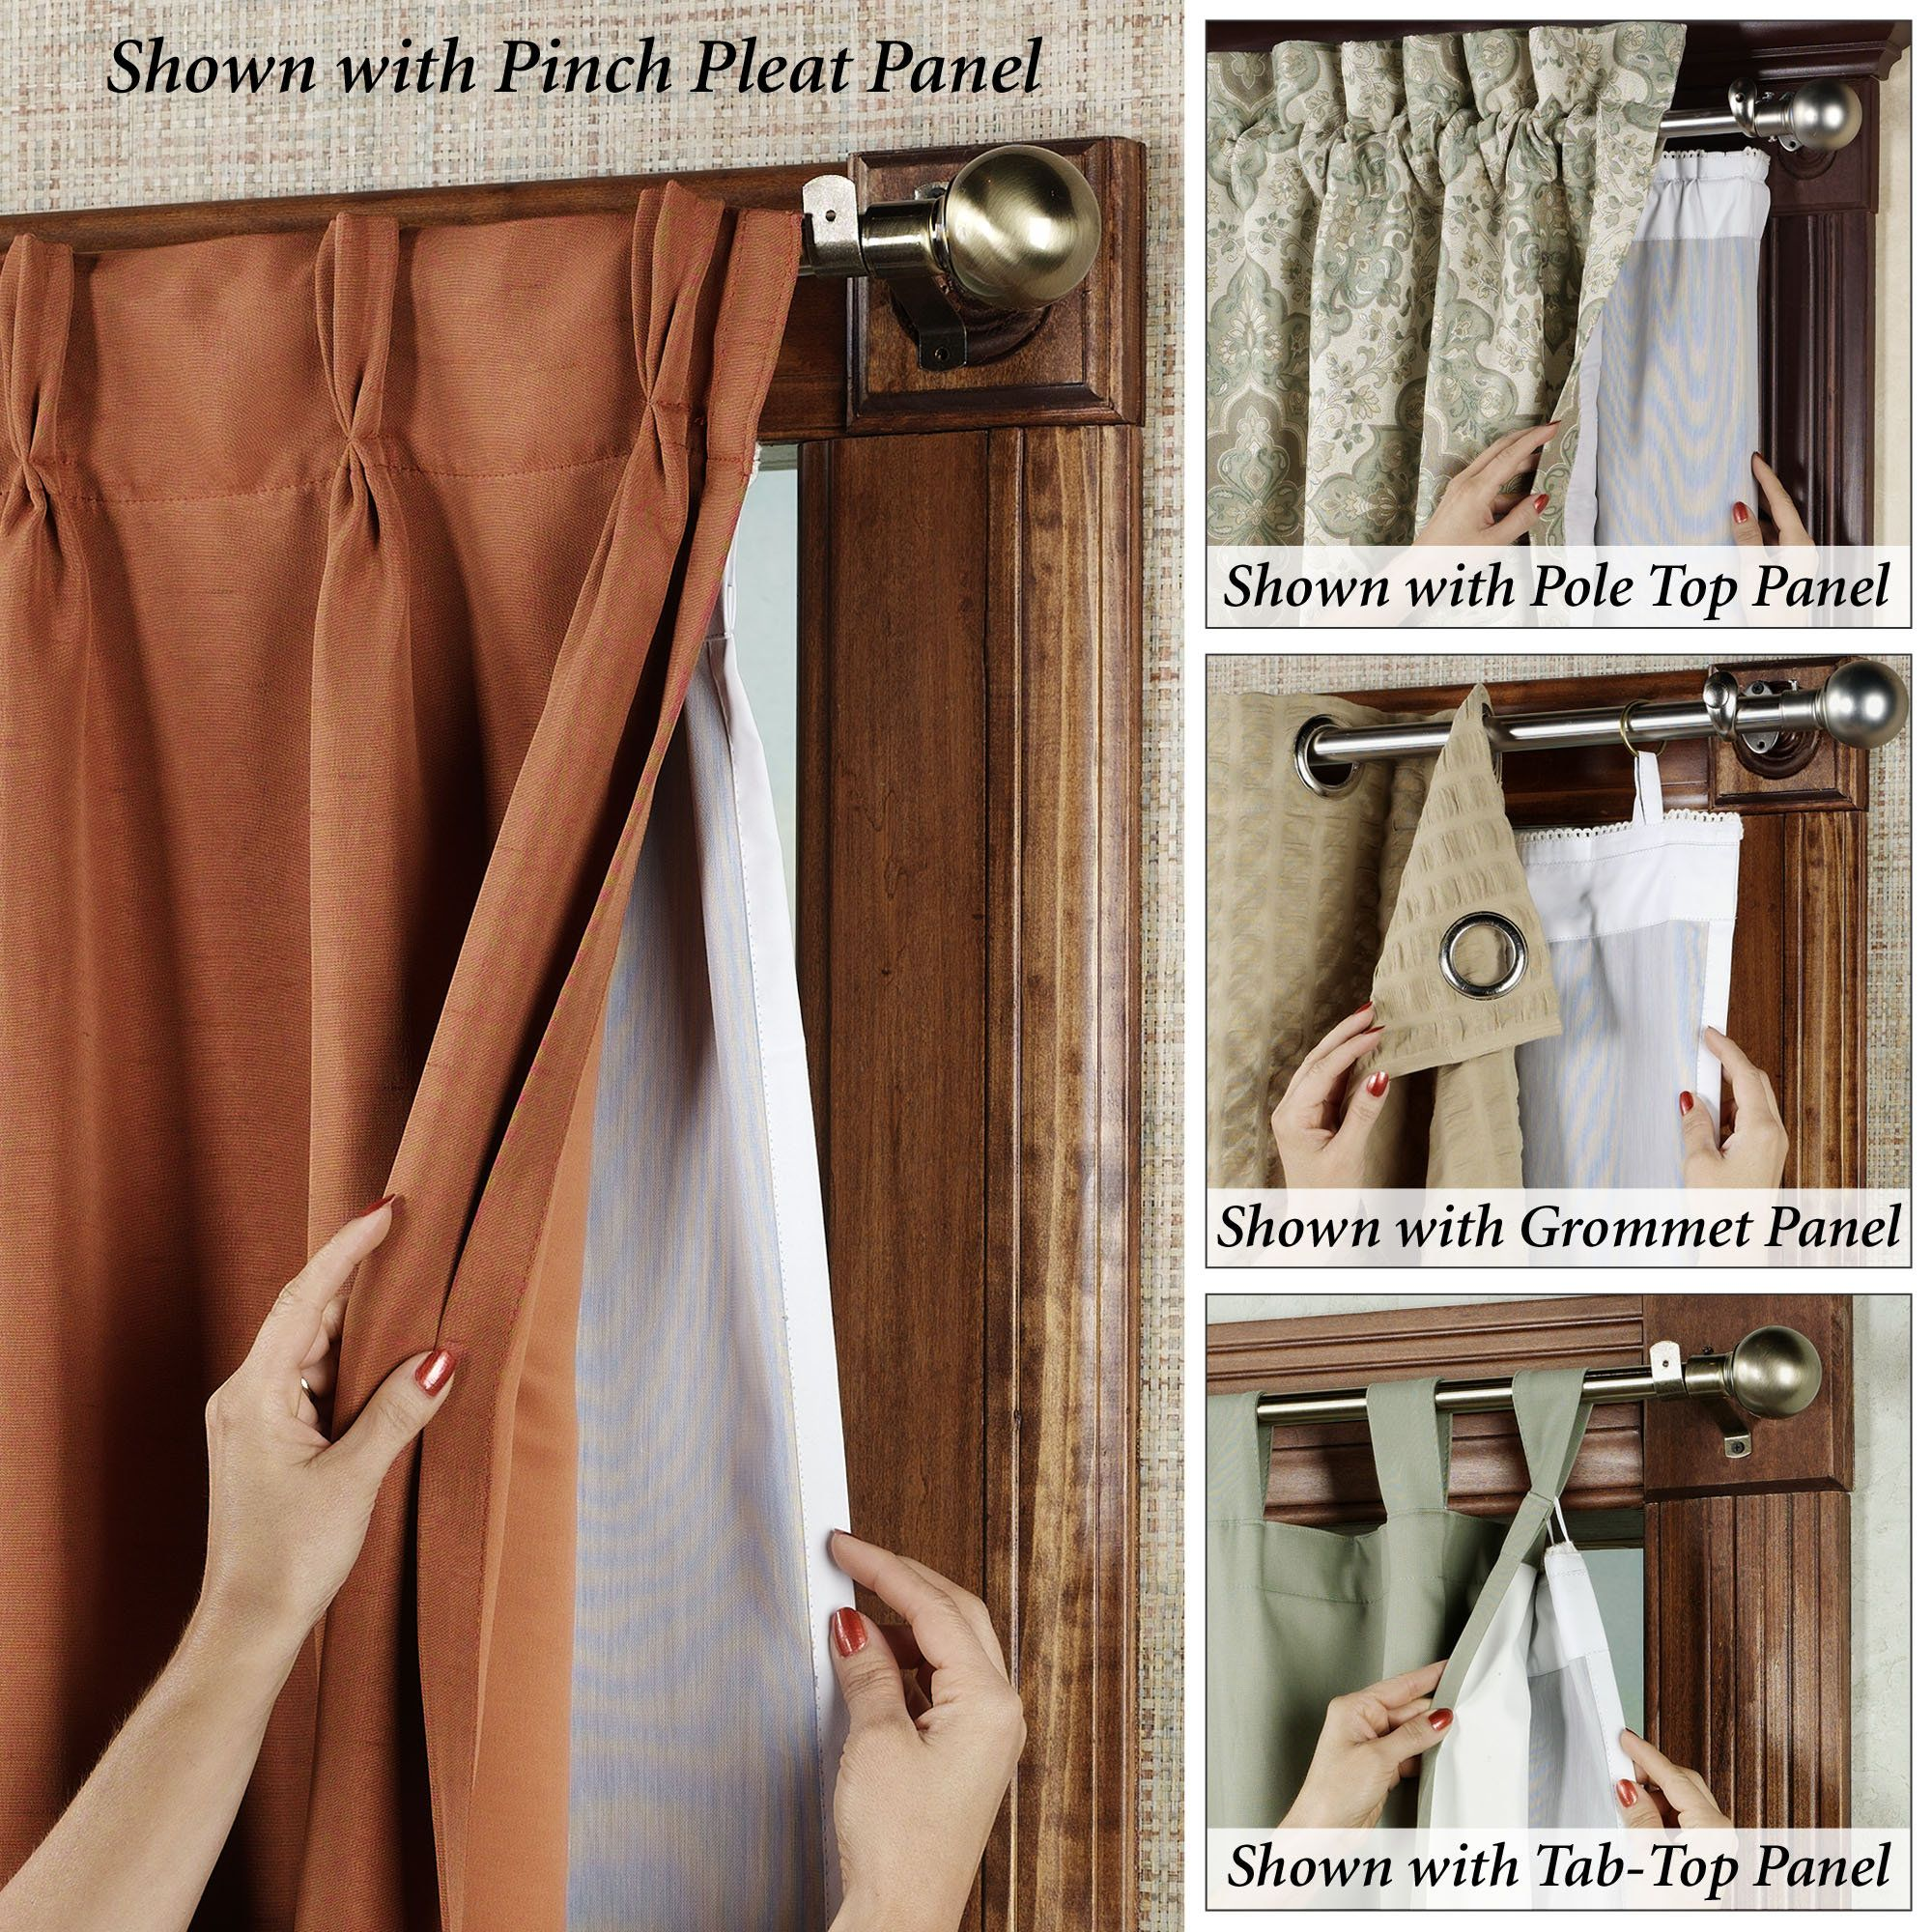 Ultimate Thermalogic Blackout Curtain Panel Liner Fits Perfectly To All Types Of Curtains